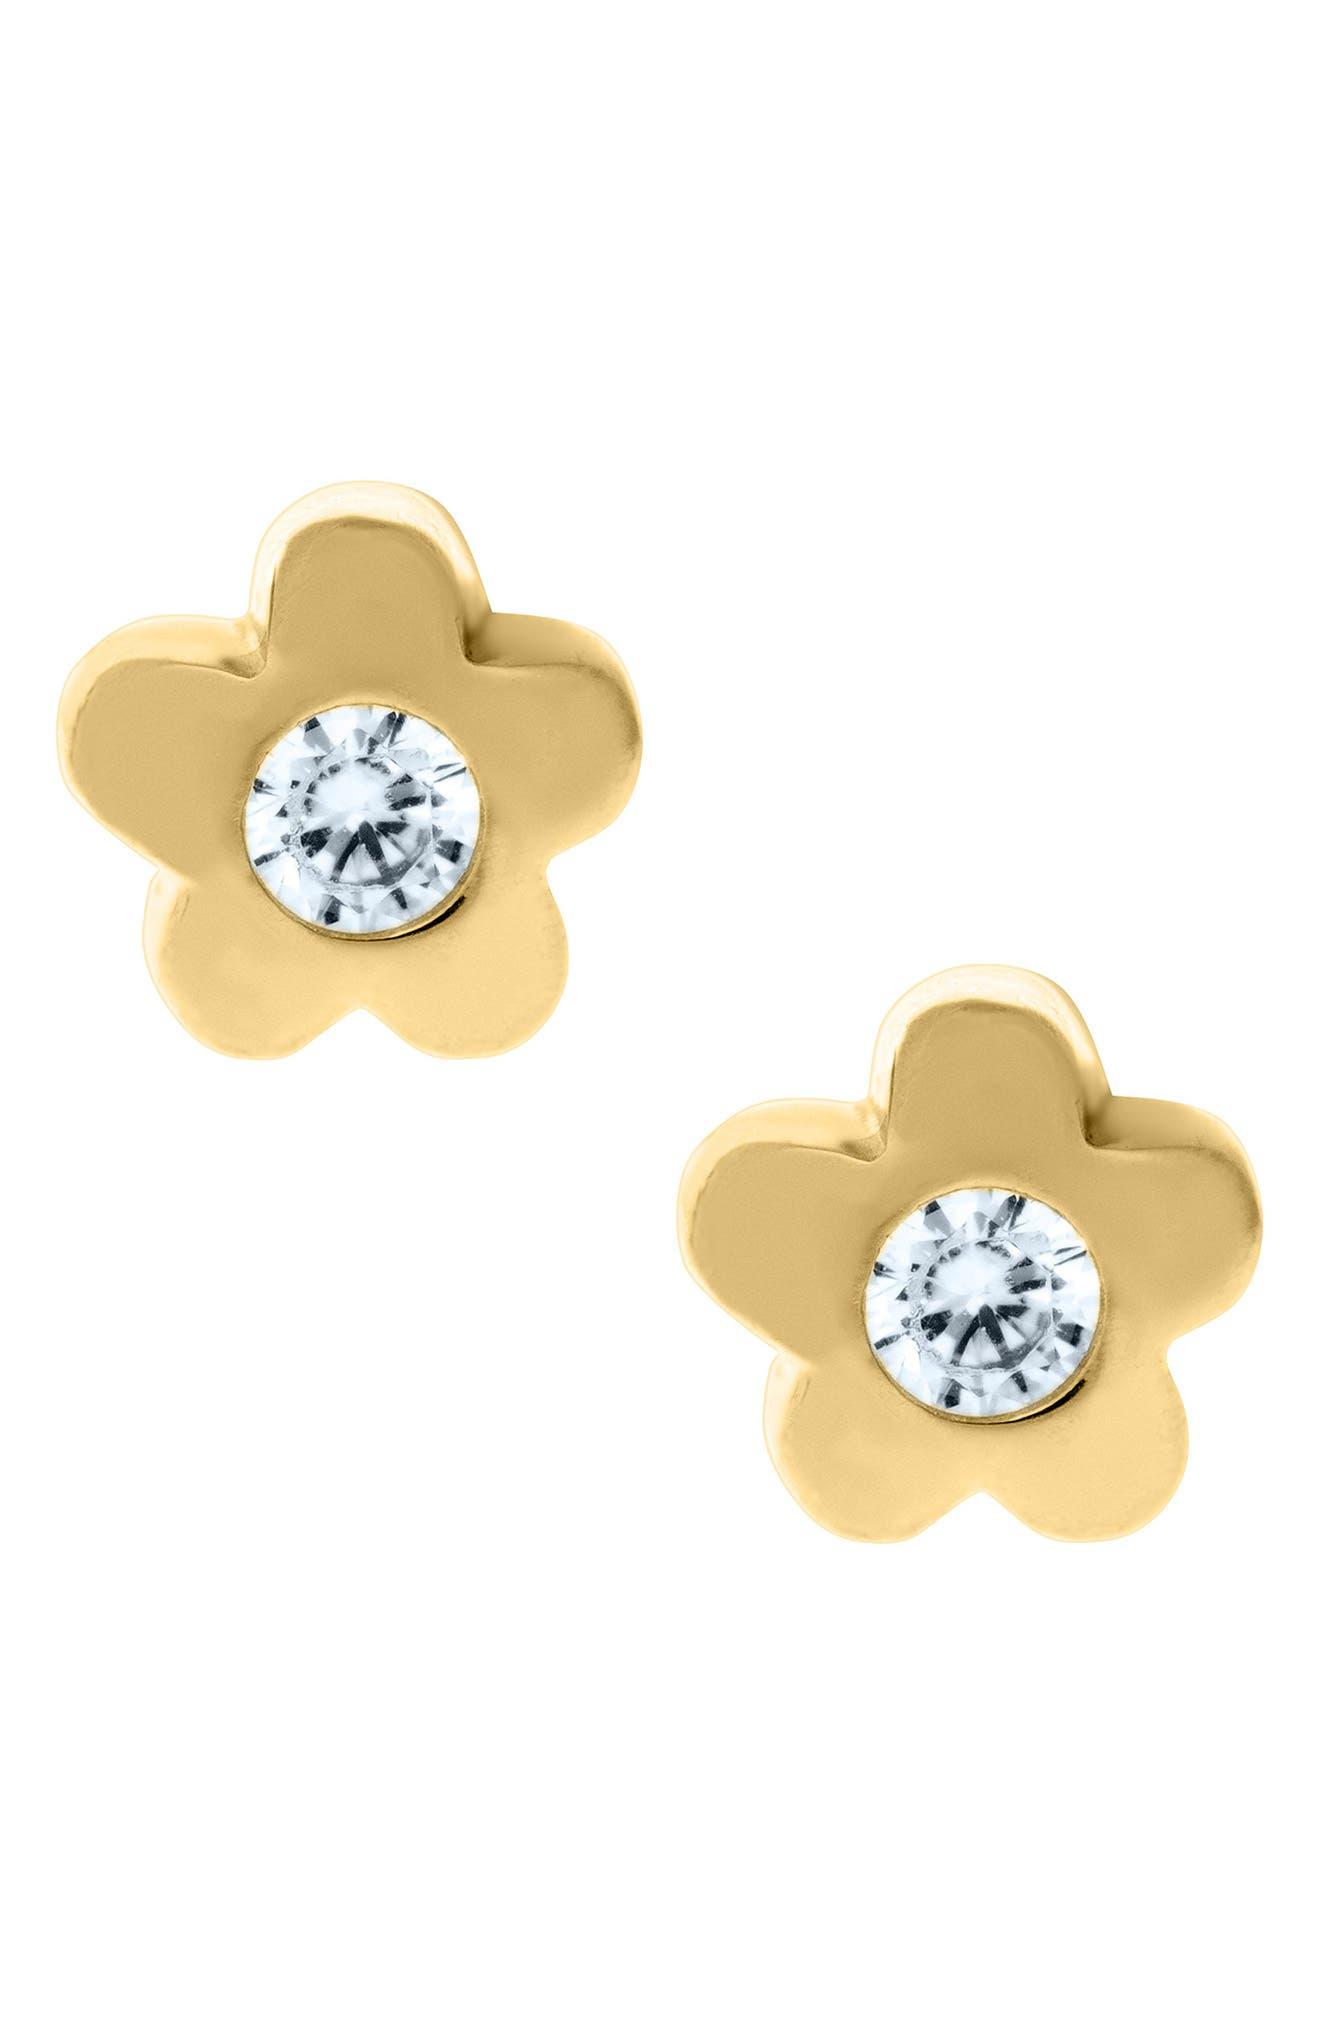 14k Gold & Cubic Zirconia Flower Earrings,                         Main,                         color, GOLD